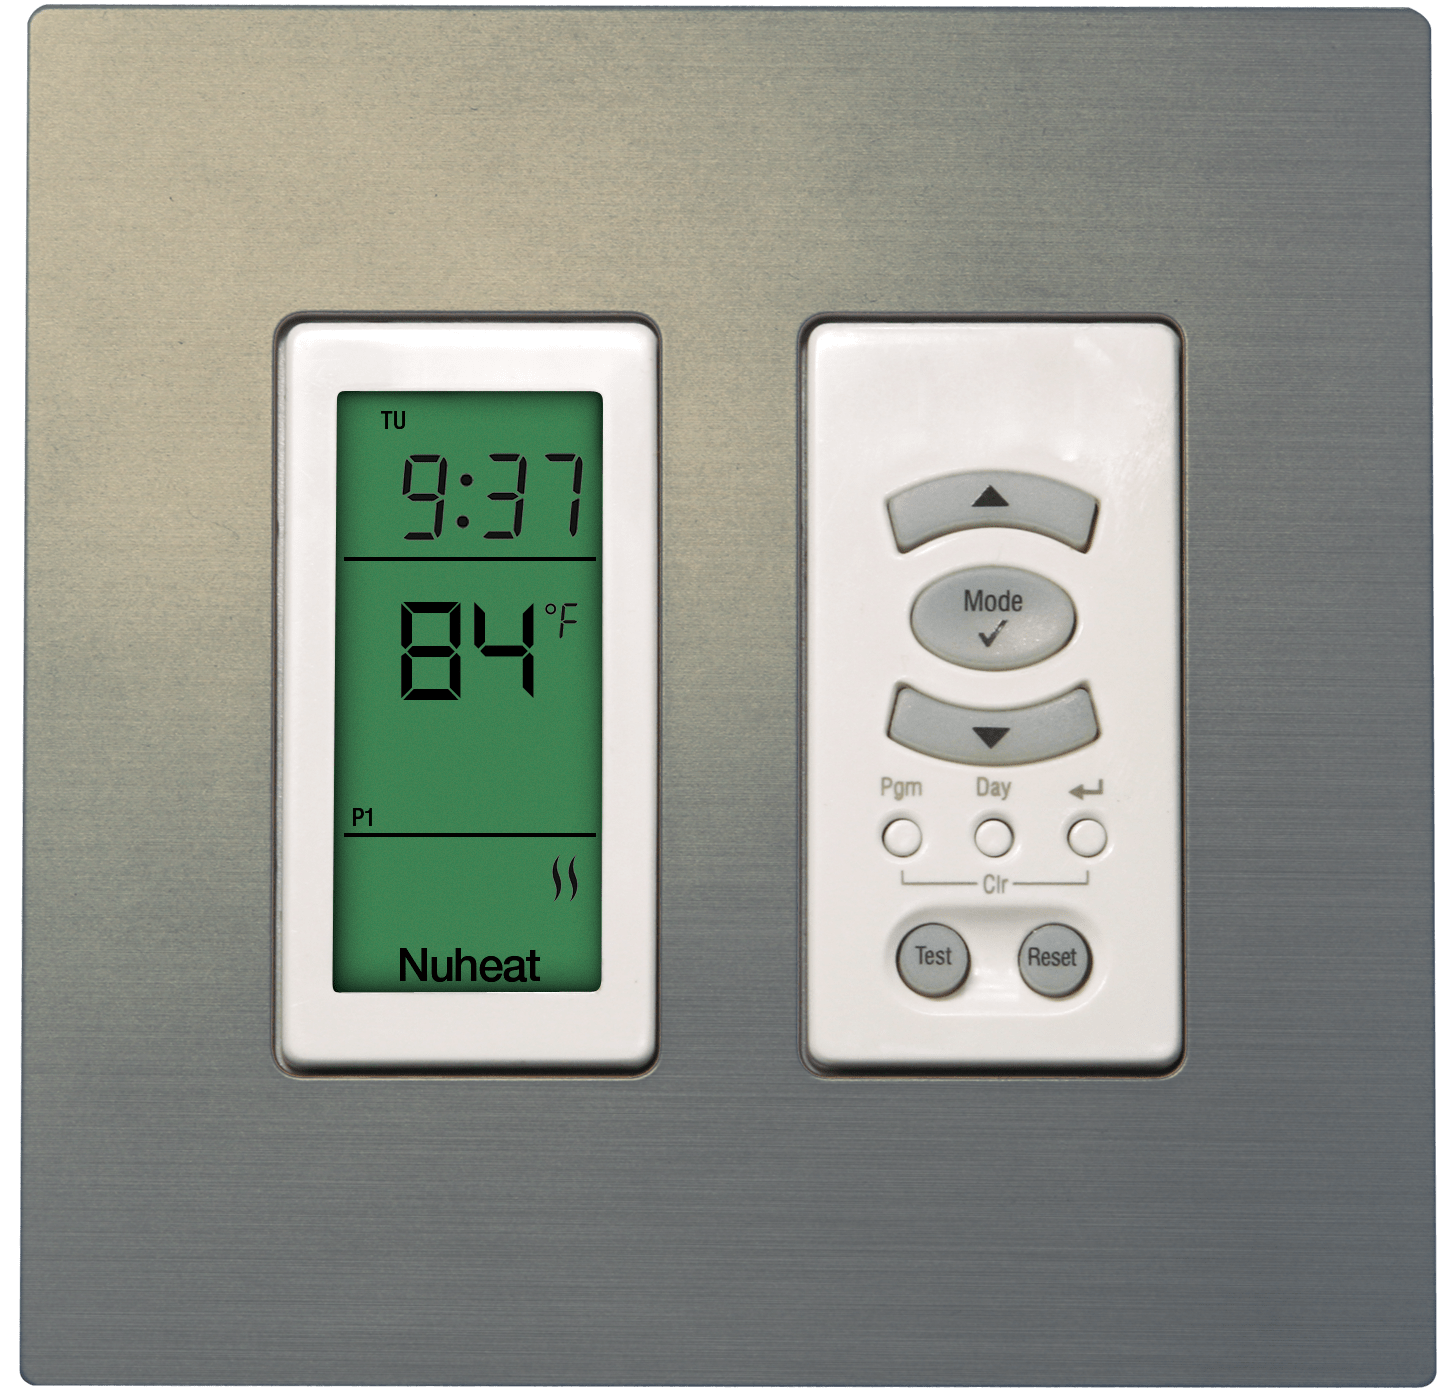 nuheat home thermostat wiring diagram paslode framing nailer parts thermostats 4 styles heat your floors pick